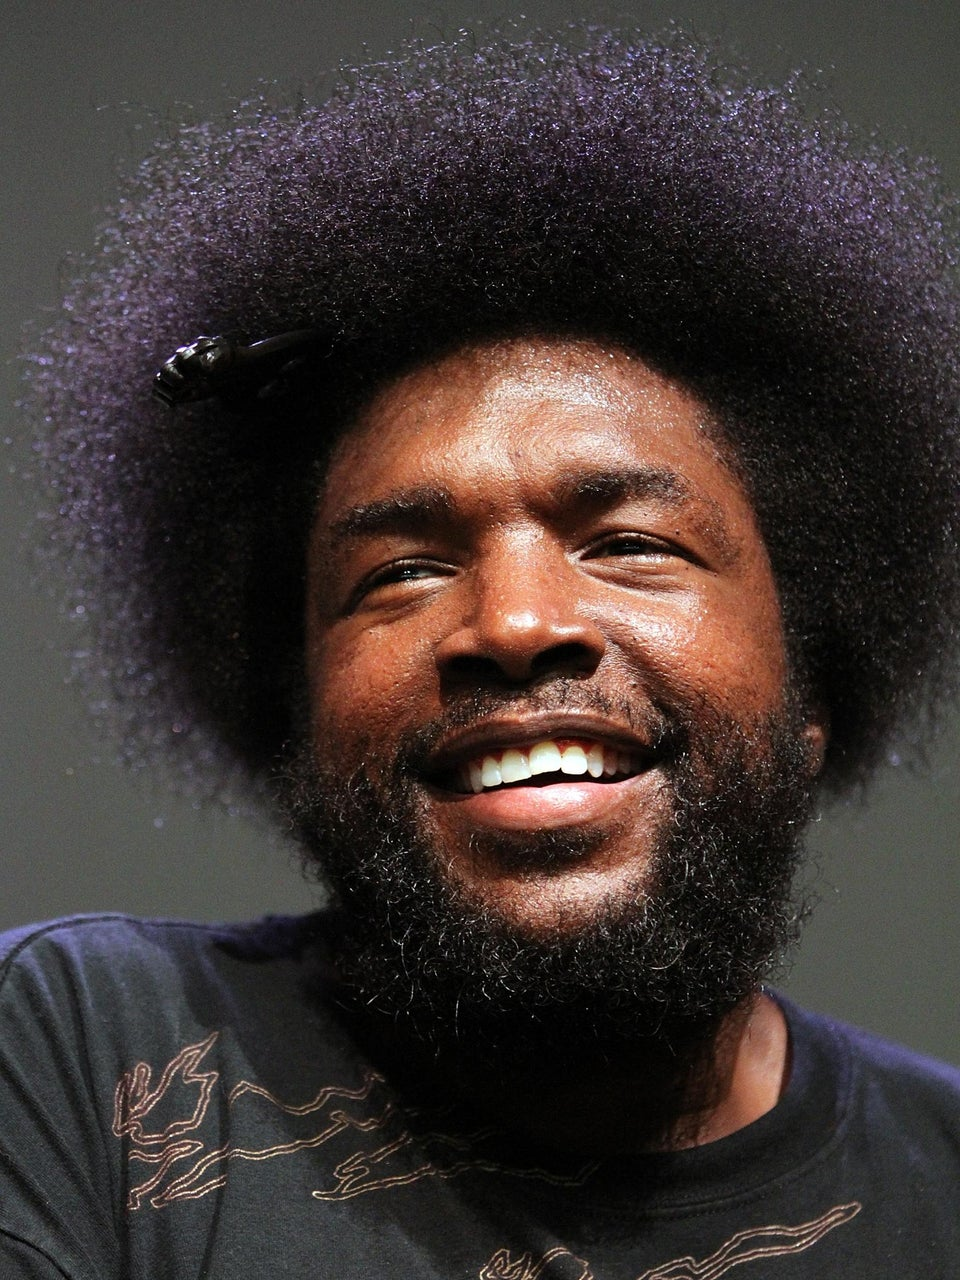 Questlove Will Pay Chrisette Michele If She Refuses To Perform At Trump Inauguration